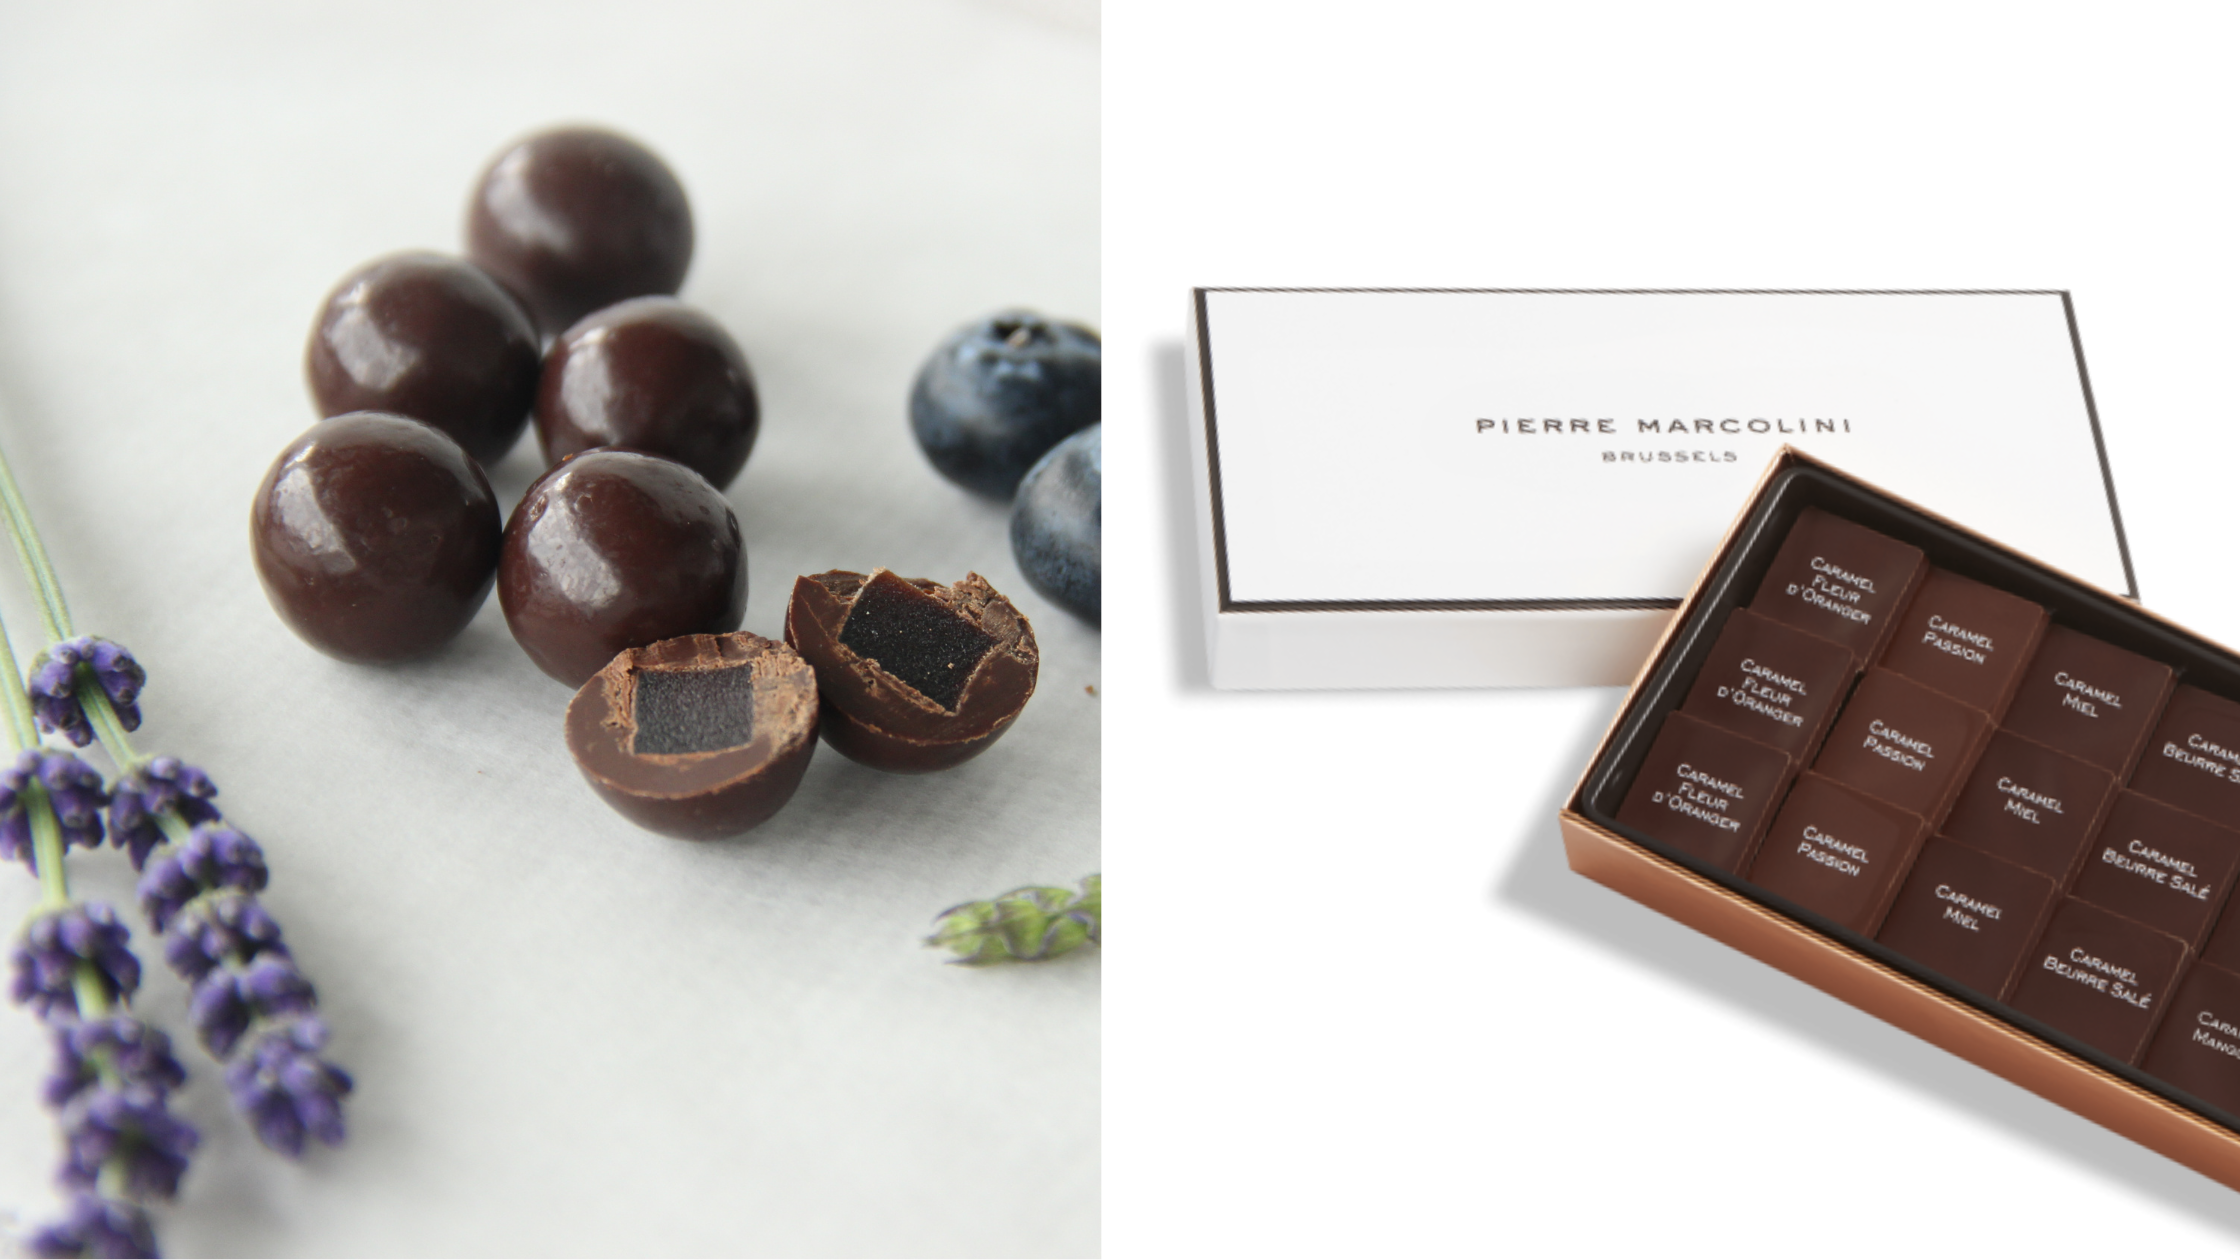 Bitesize luxury panned chocolate balls and Marcolini